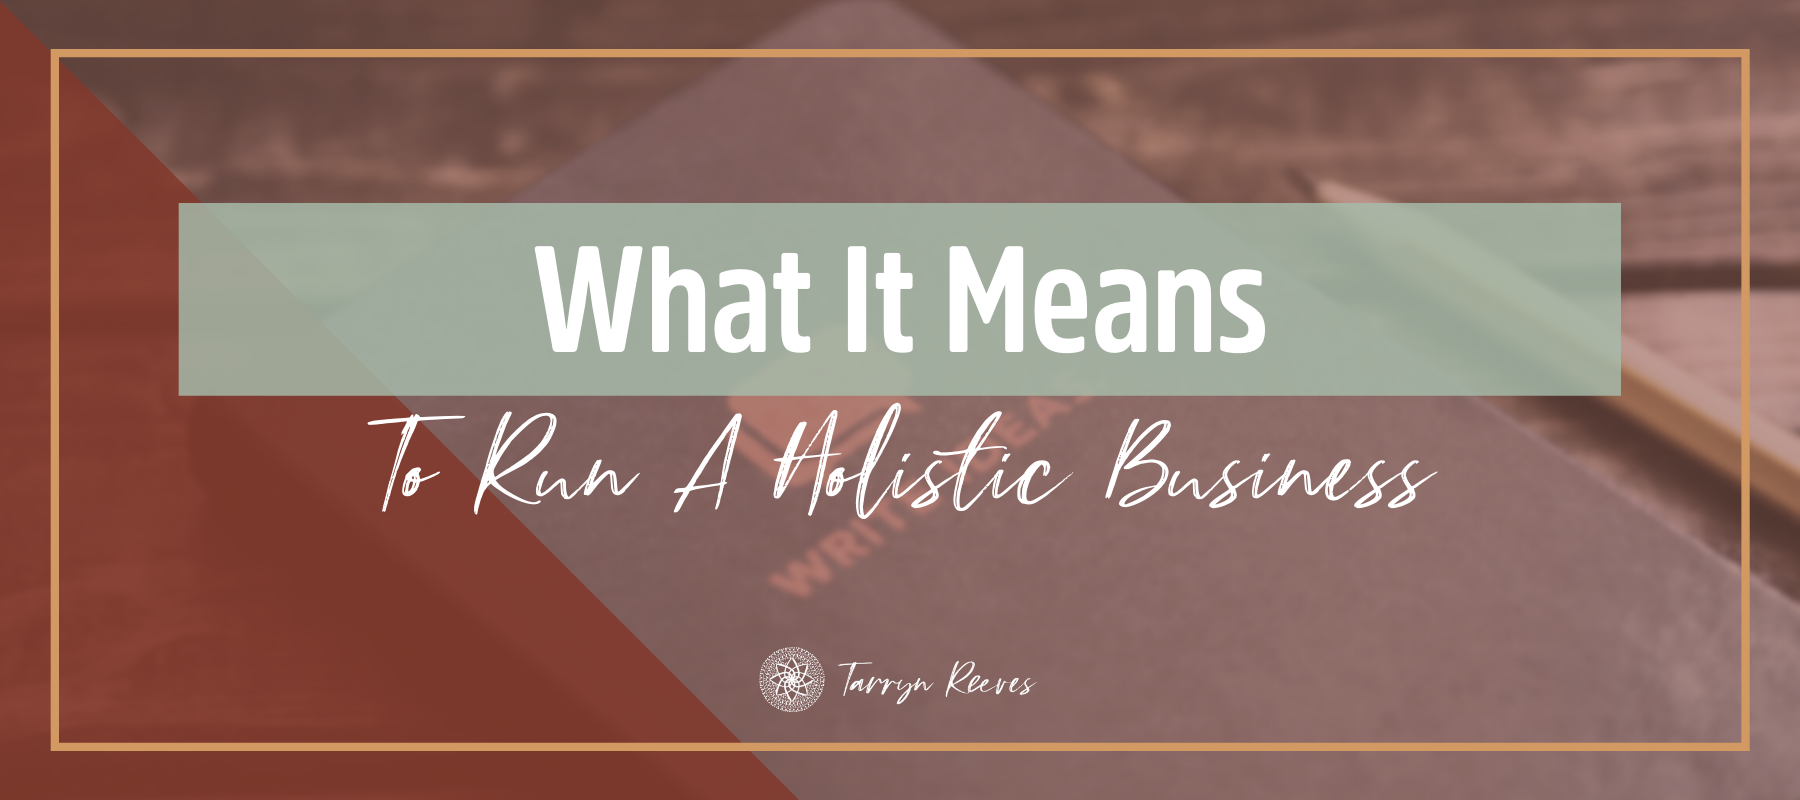 What It Means To Run A Holistic Business.